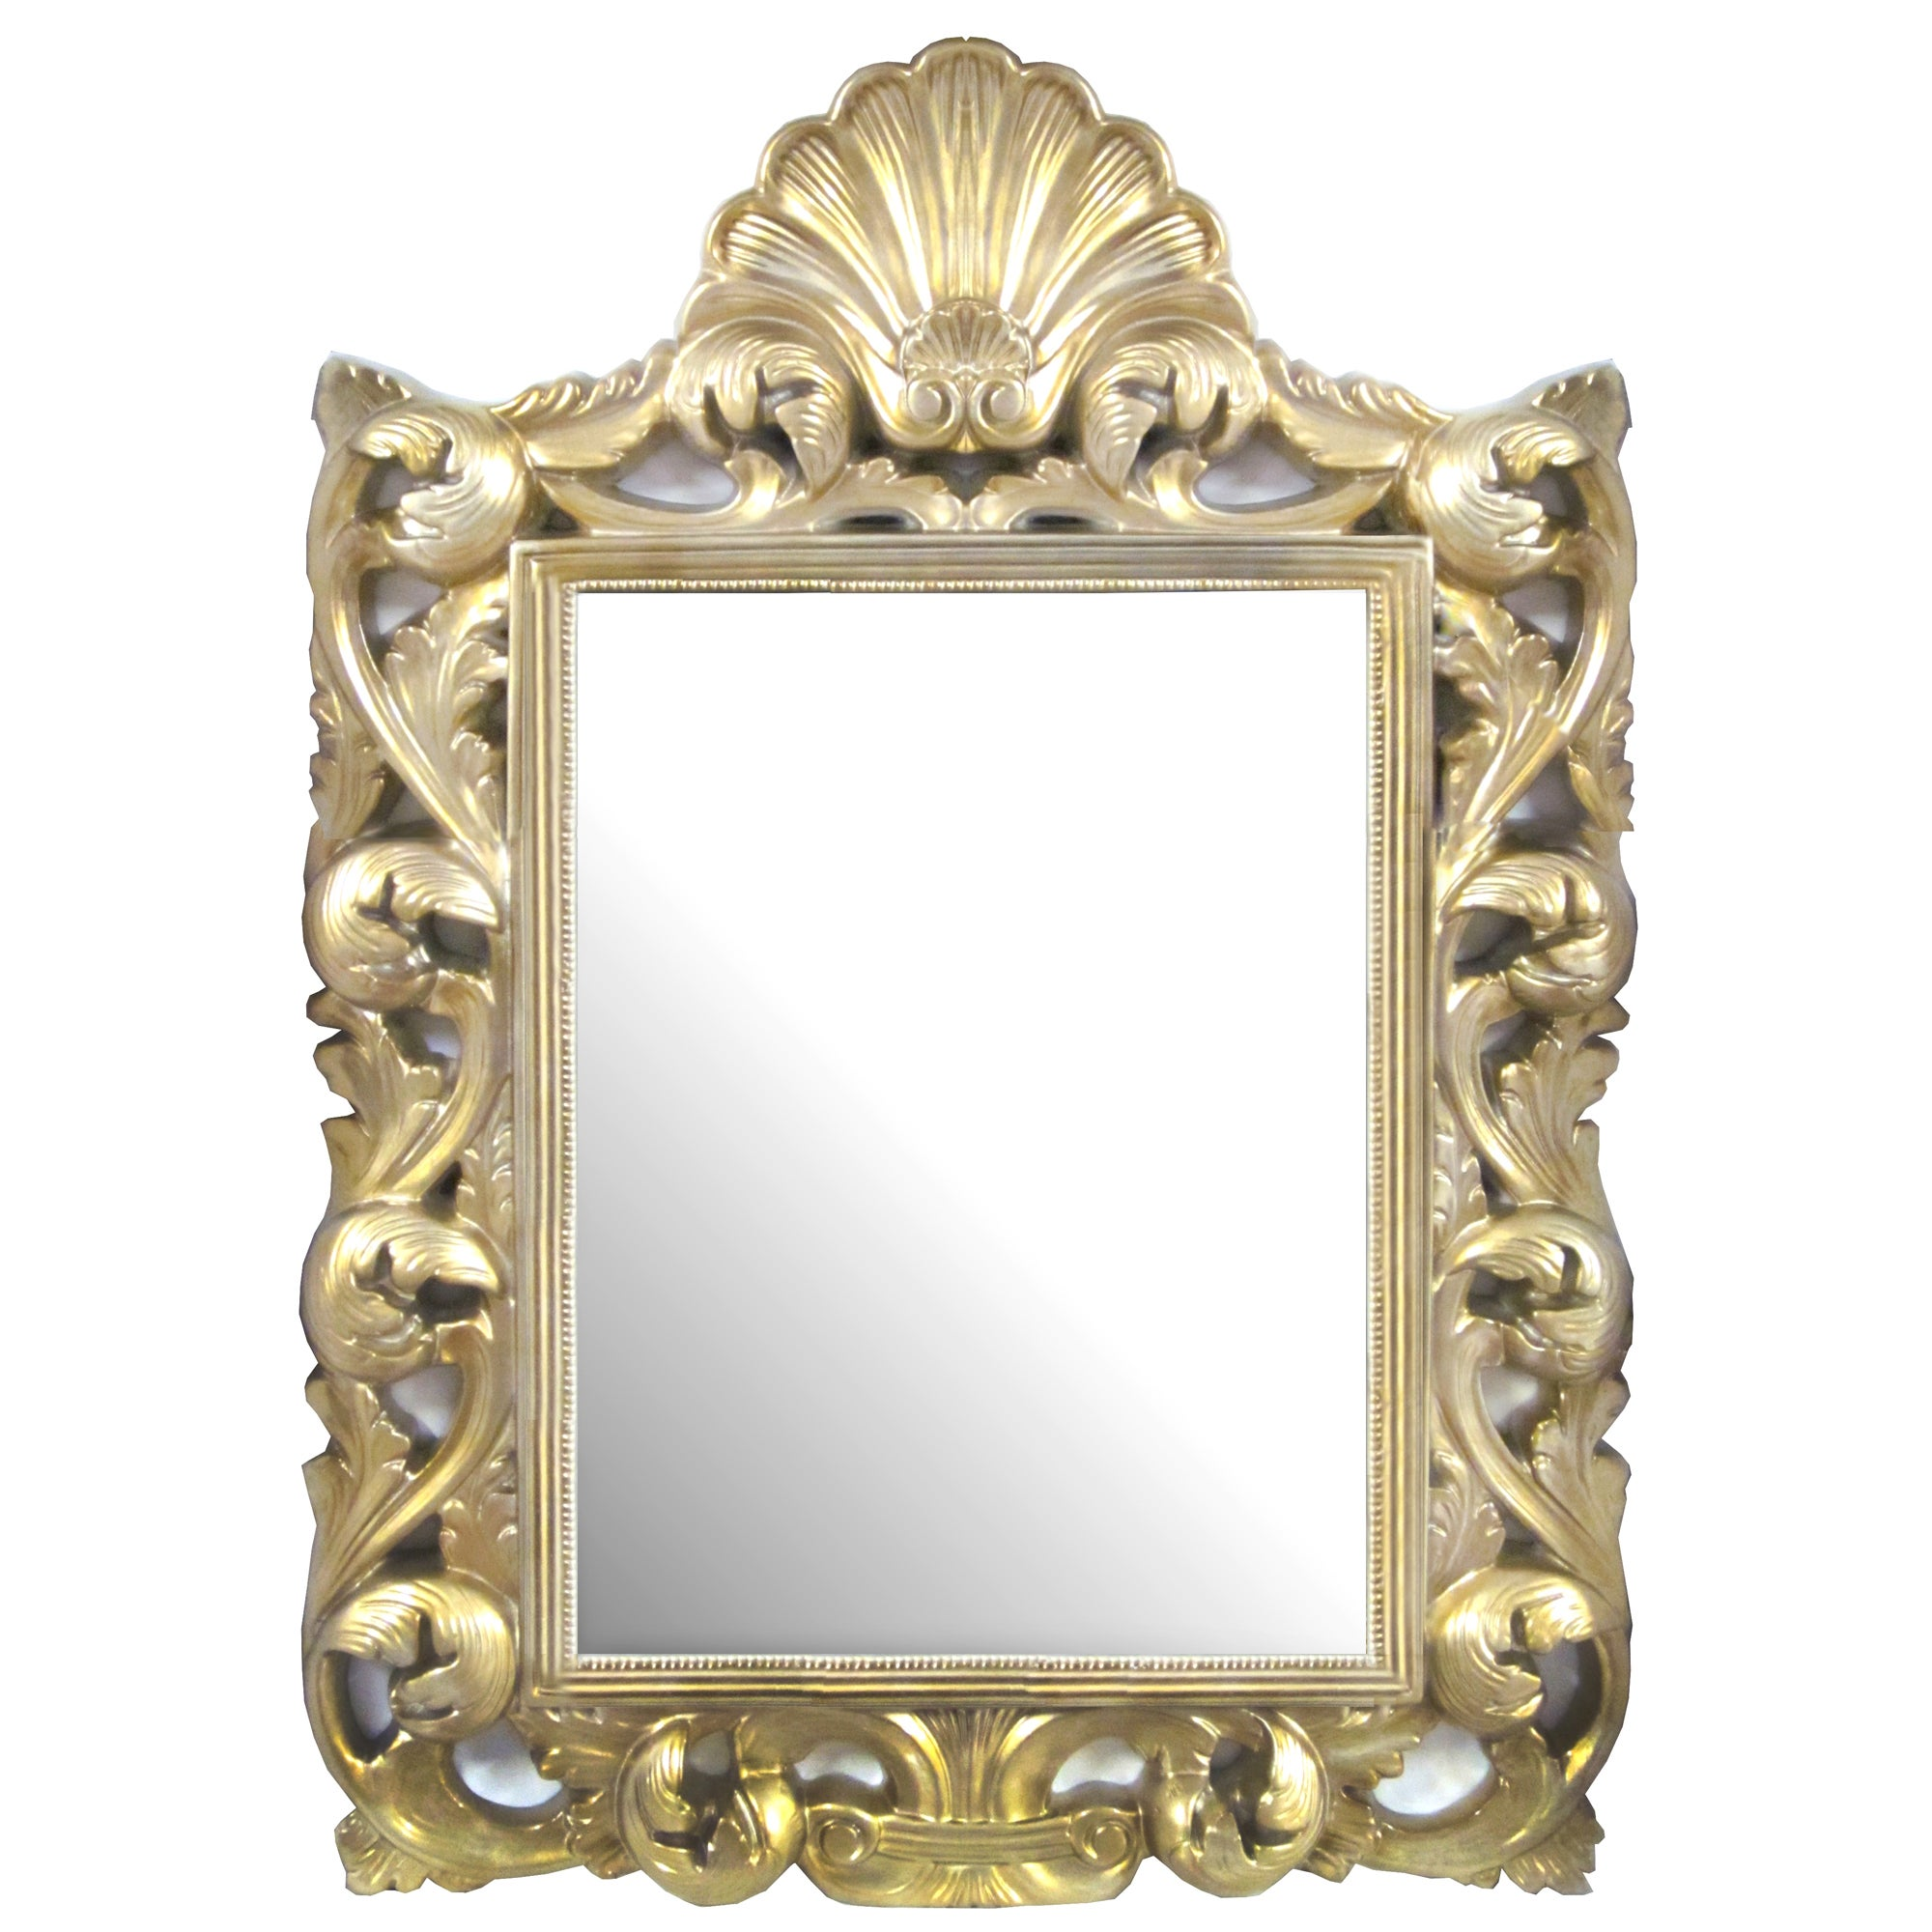 Gold Swirl Framed Mirror